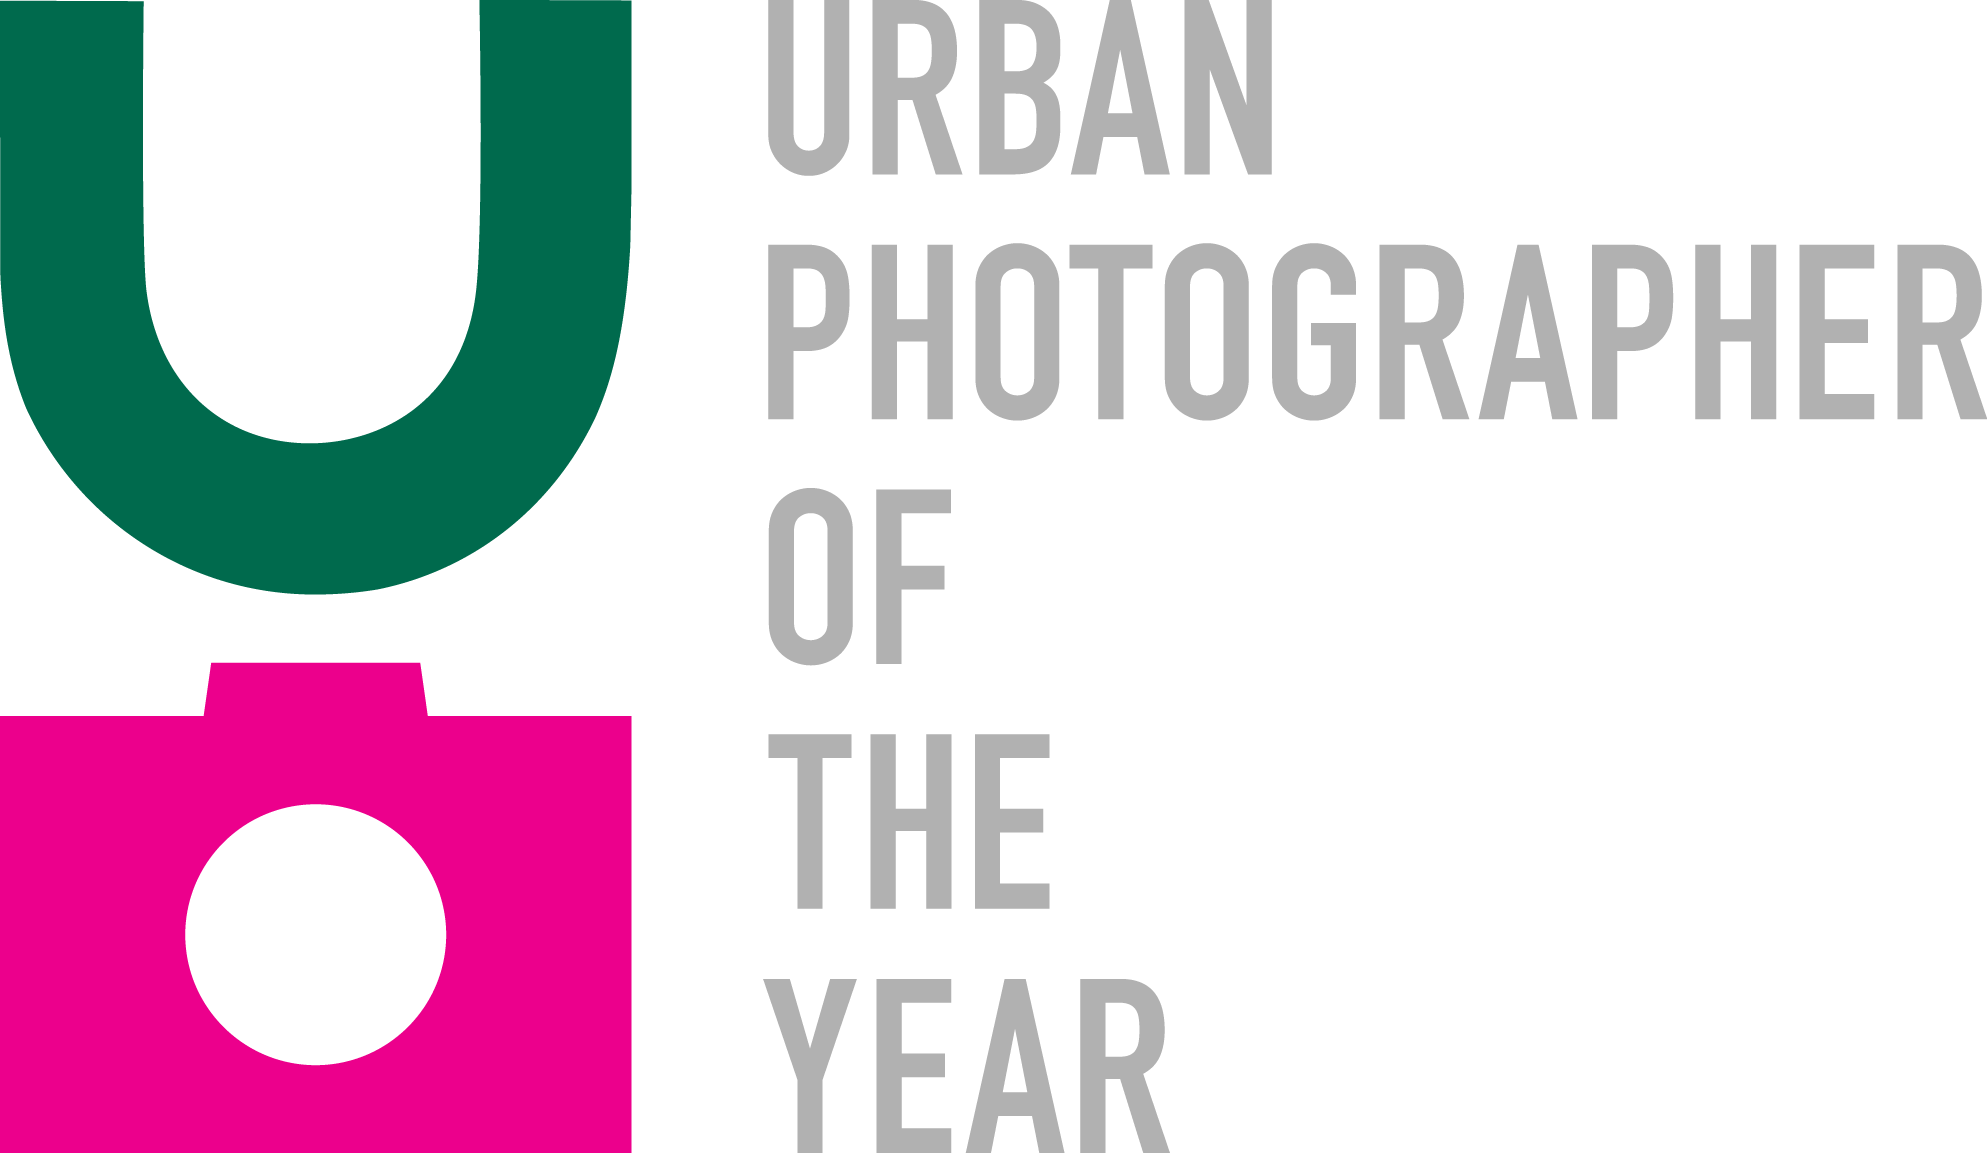 Urban Photographer of the Year competition